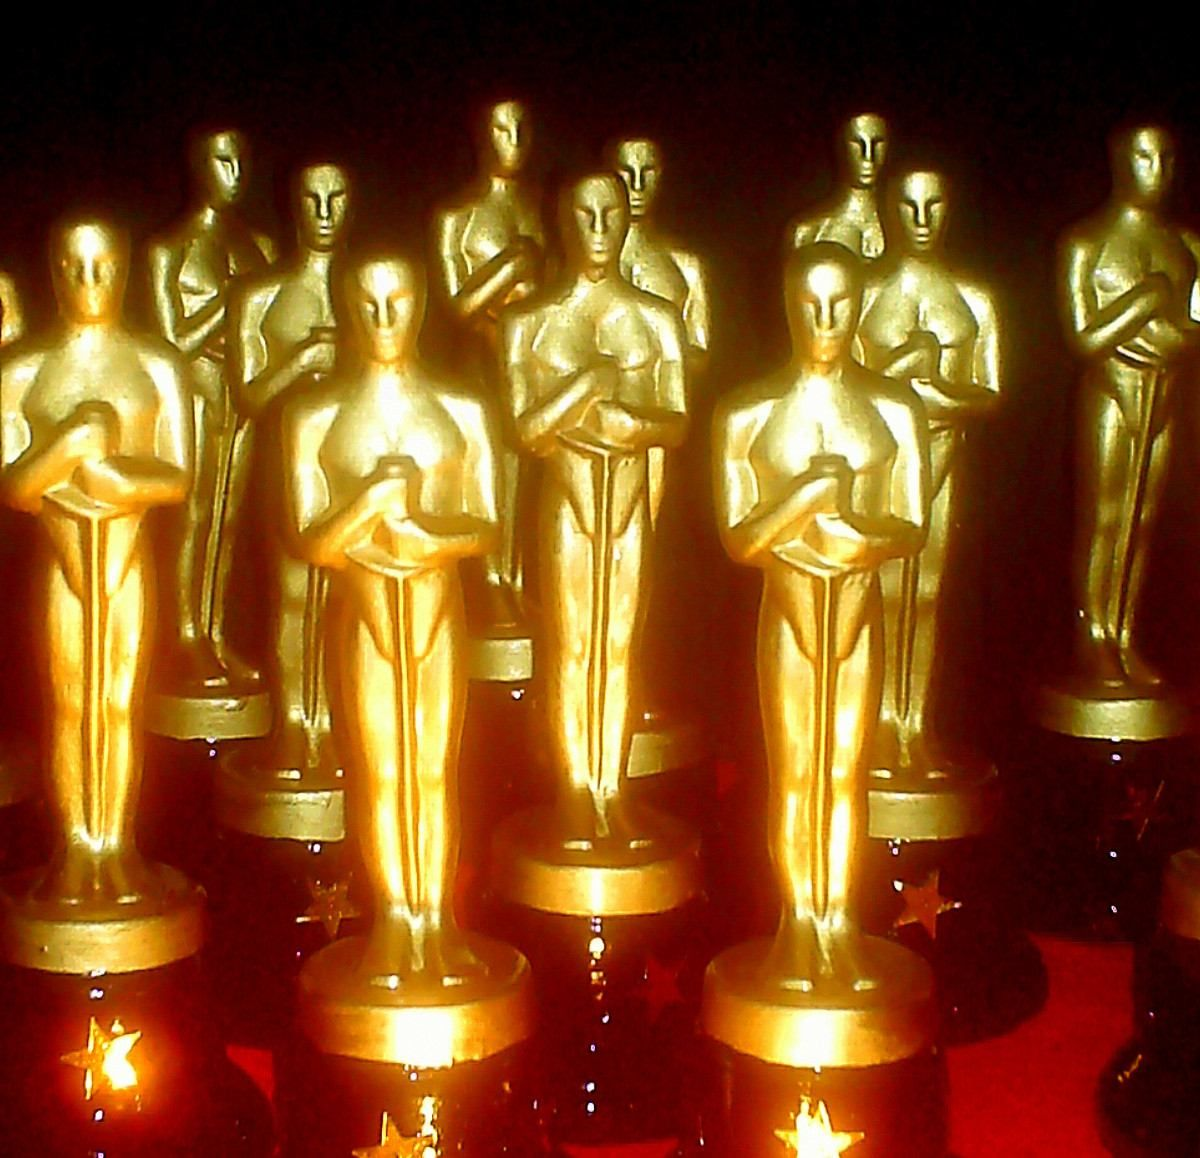 Estatuas Premios Oscar Hollywood Brillantes Bs 200 00 Estatuas Premios Oscar Premios